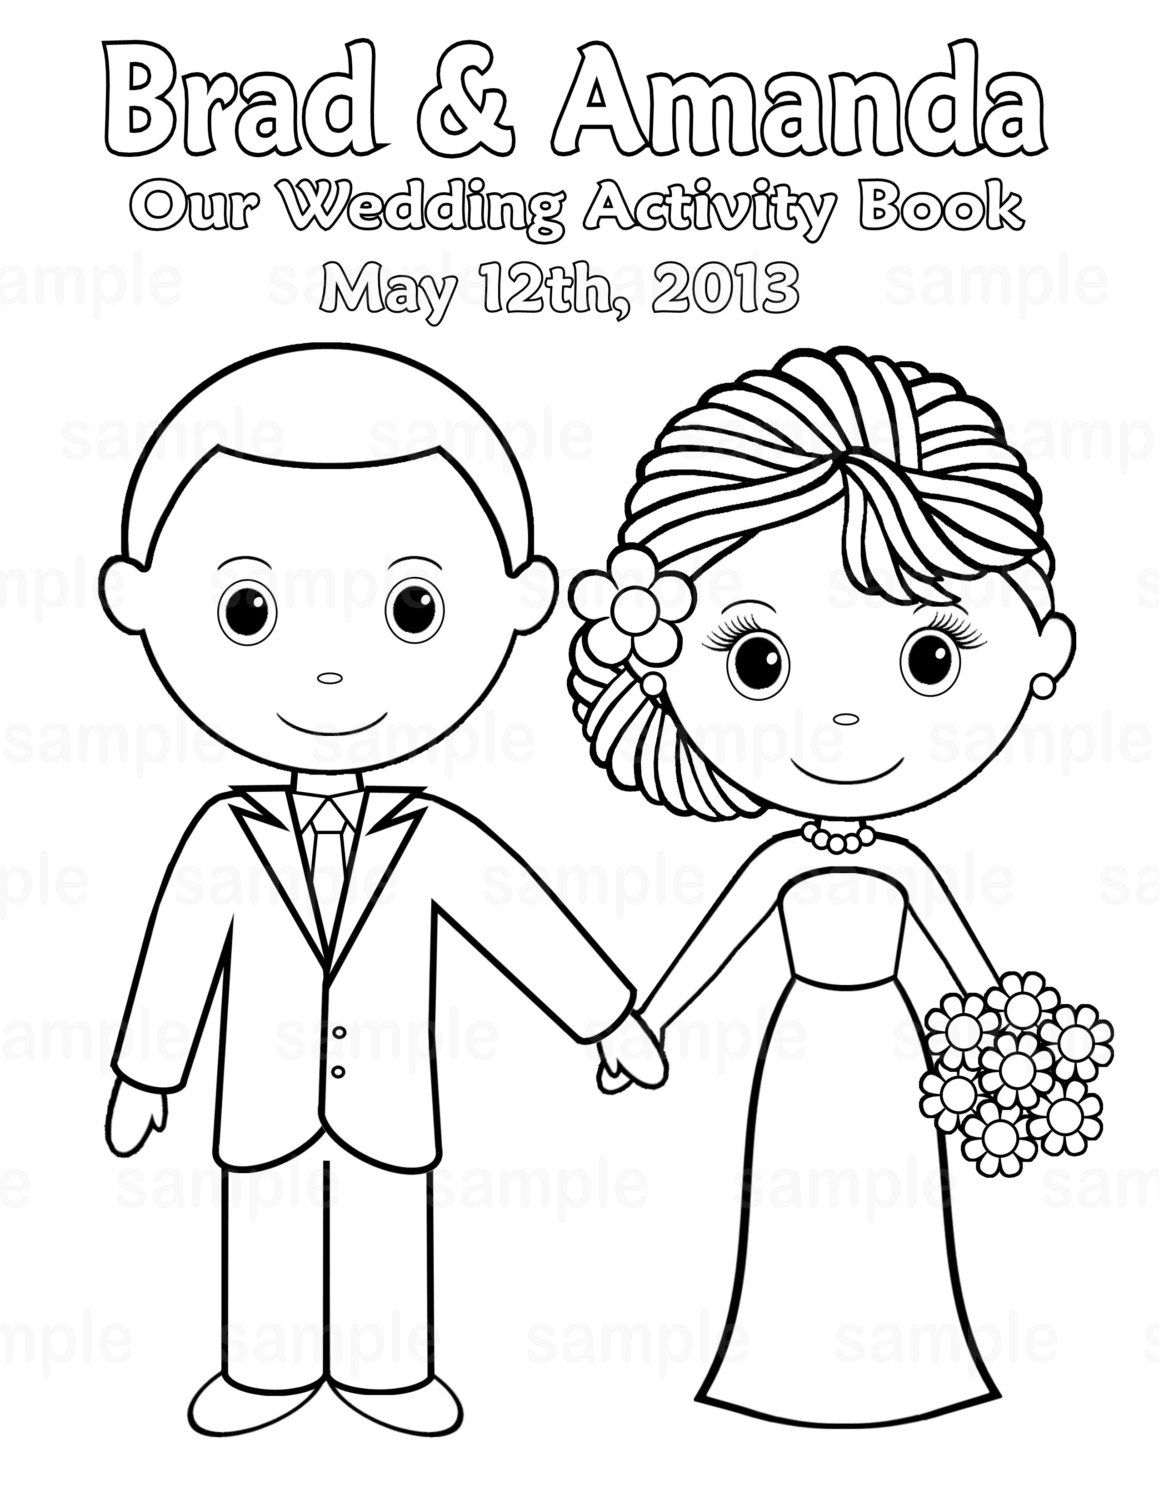 Printable Personalized Wedding Coloring Activity Book Favor Kids 8.5 - Wedding Coloring Book Free Printable